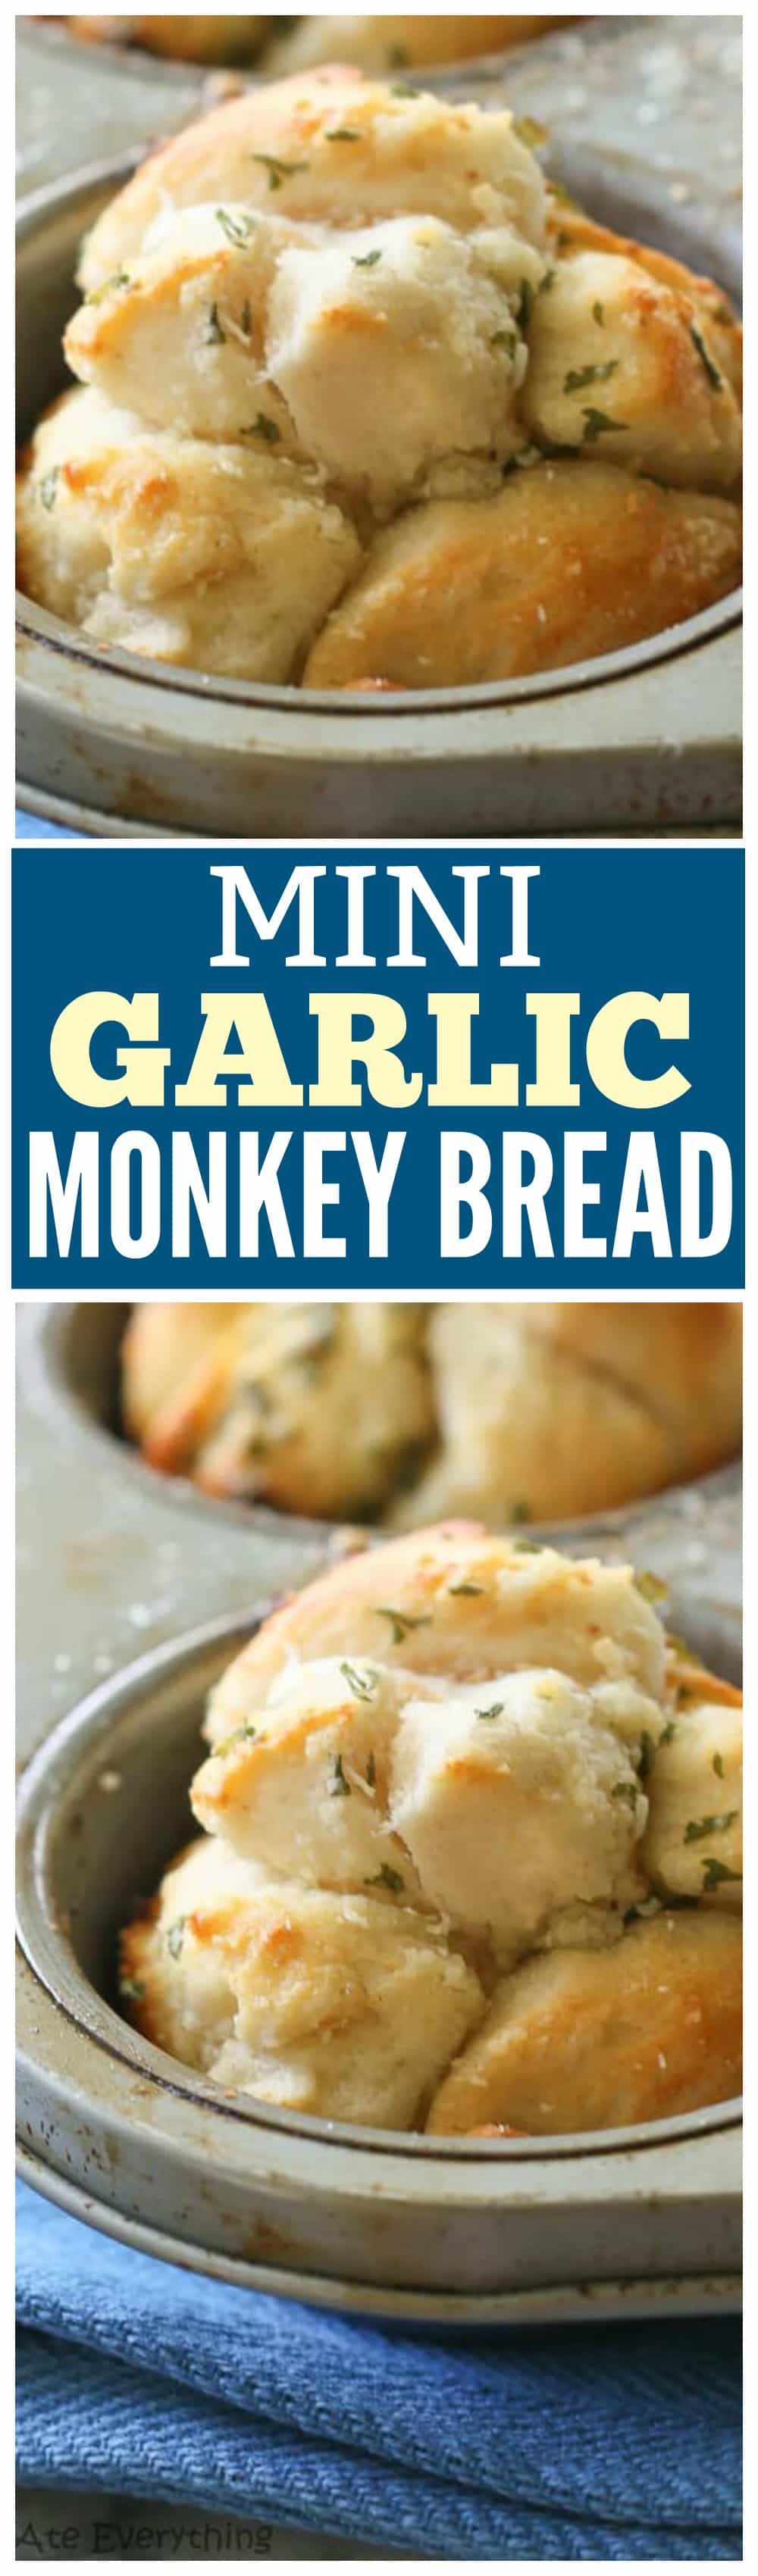 Mini Garlic Monkey Bread - The Girl Who Ate Everything